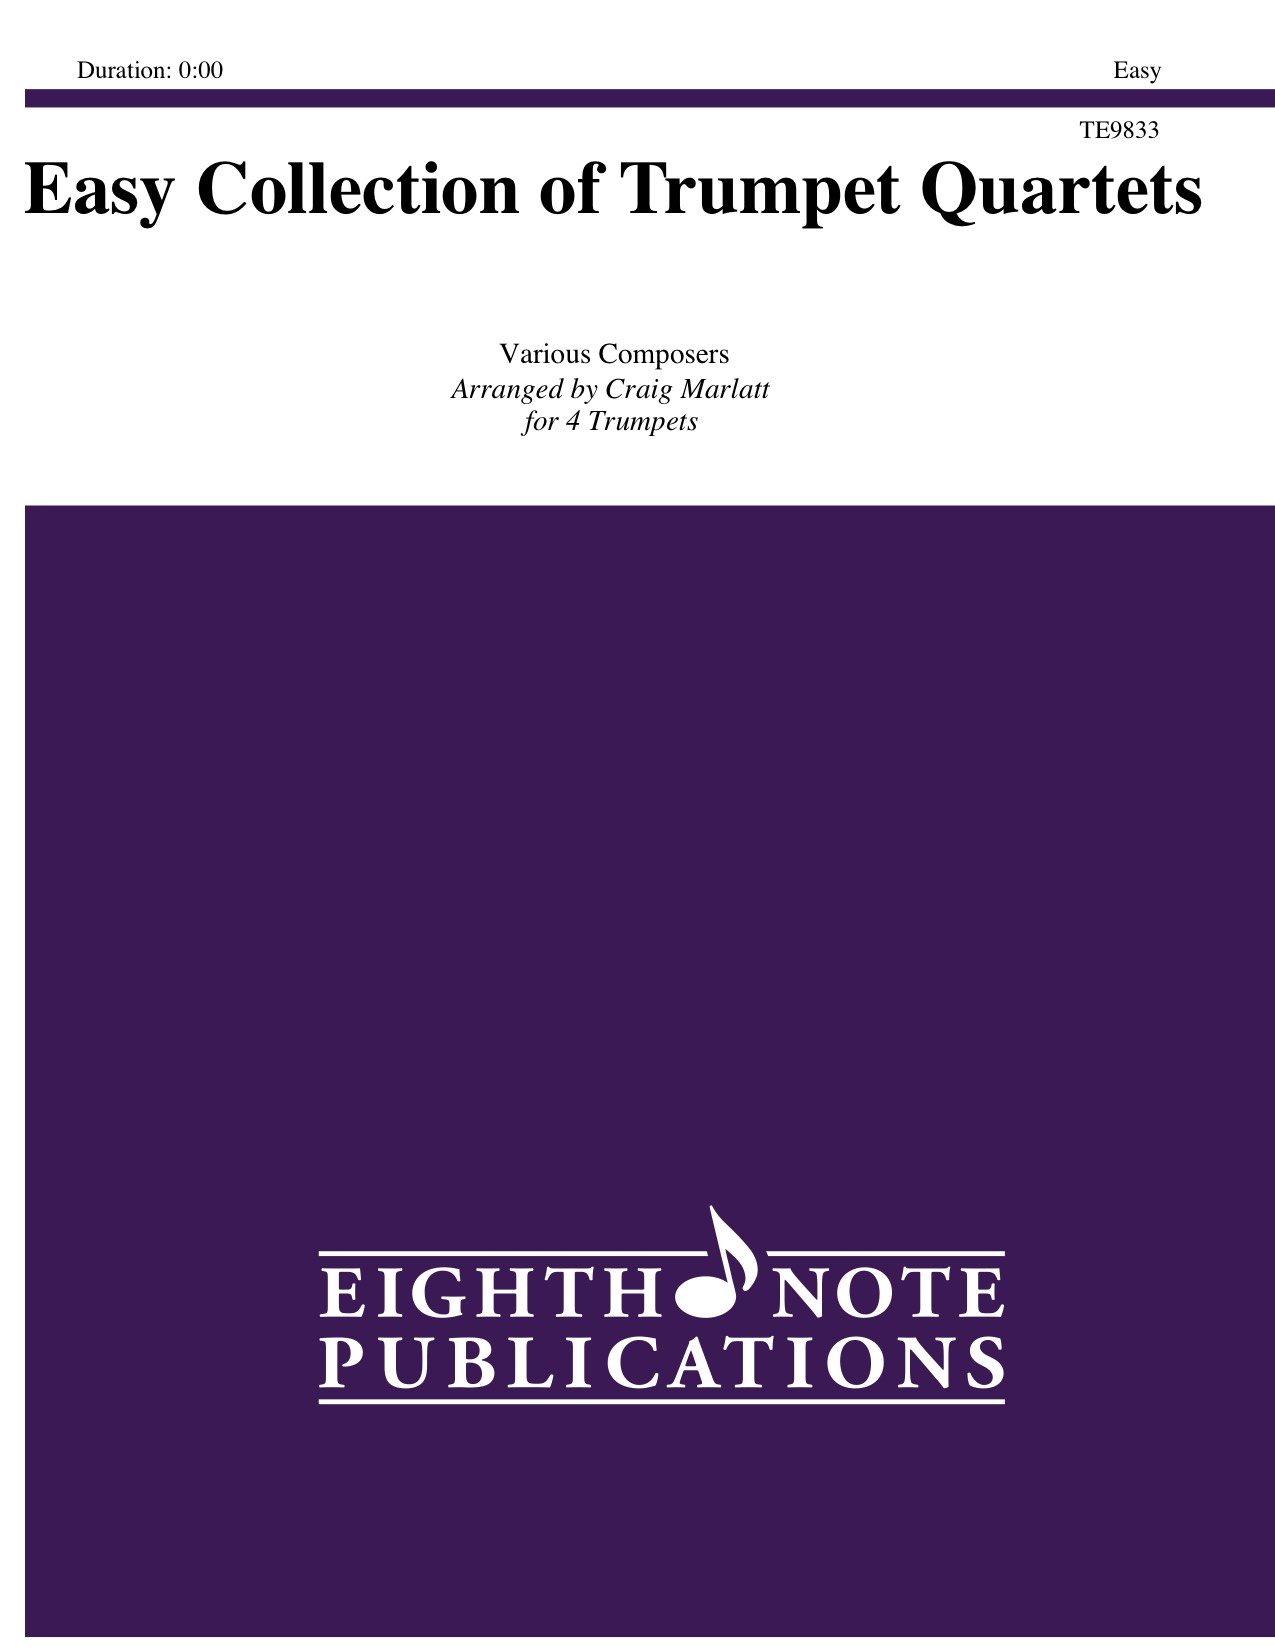 Easy Collection of Trumpet Quartets -  Various